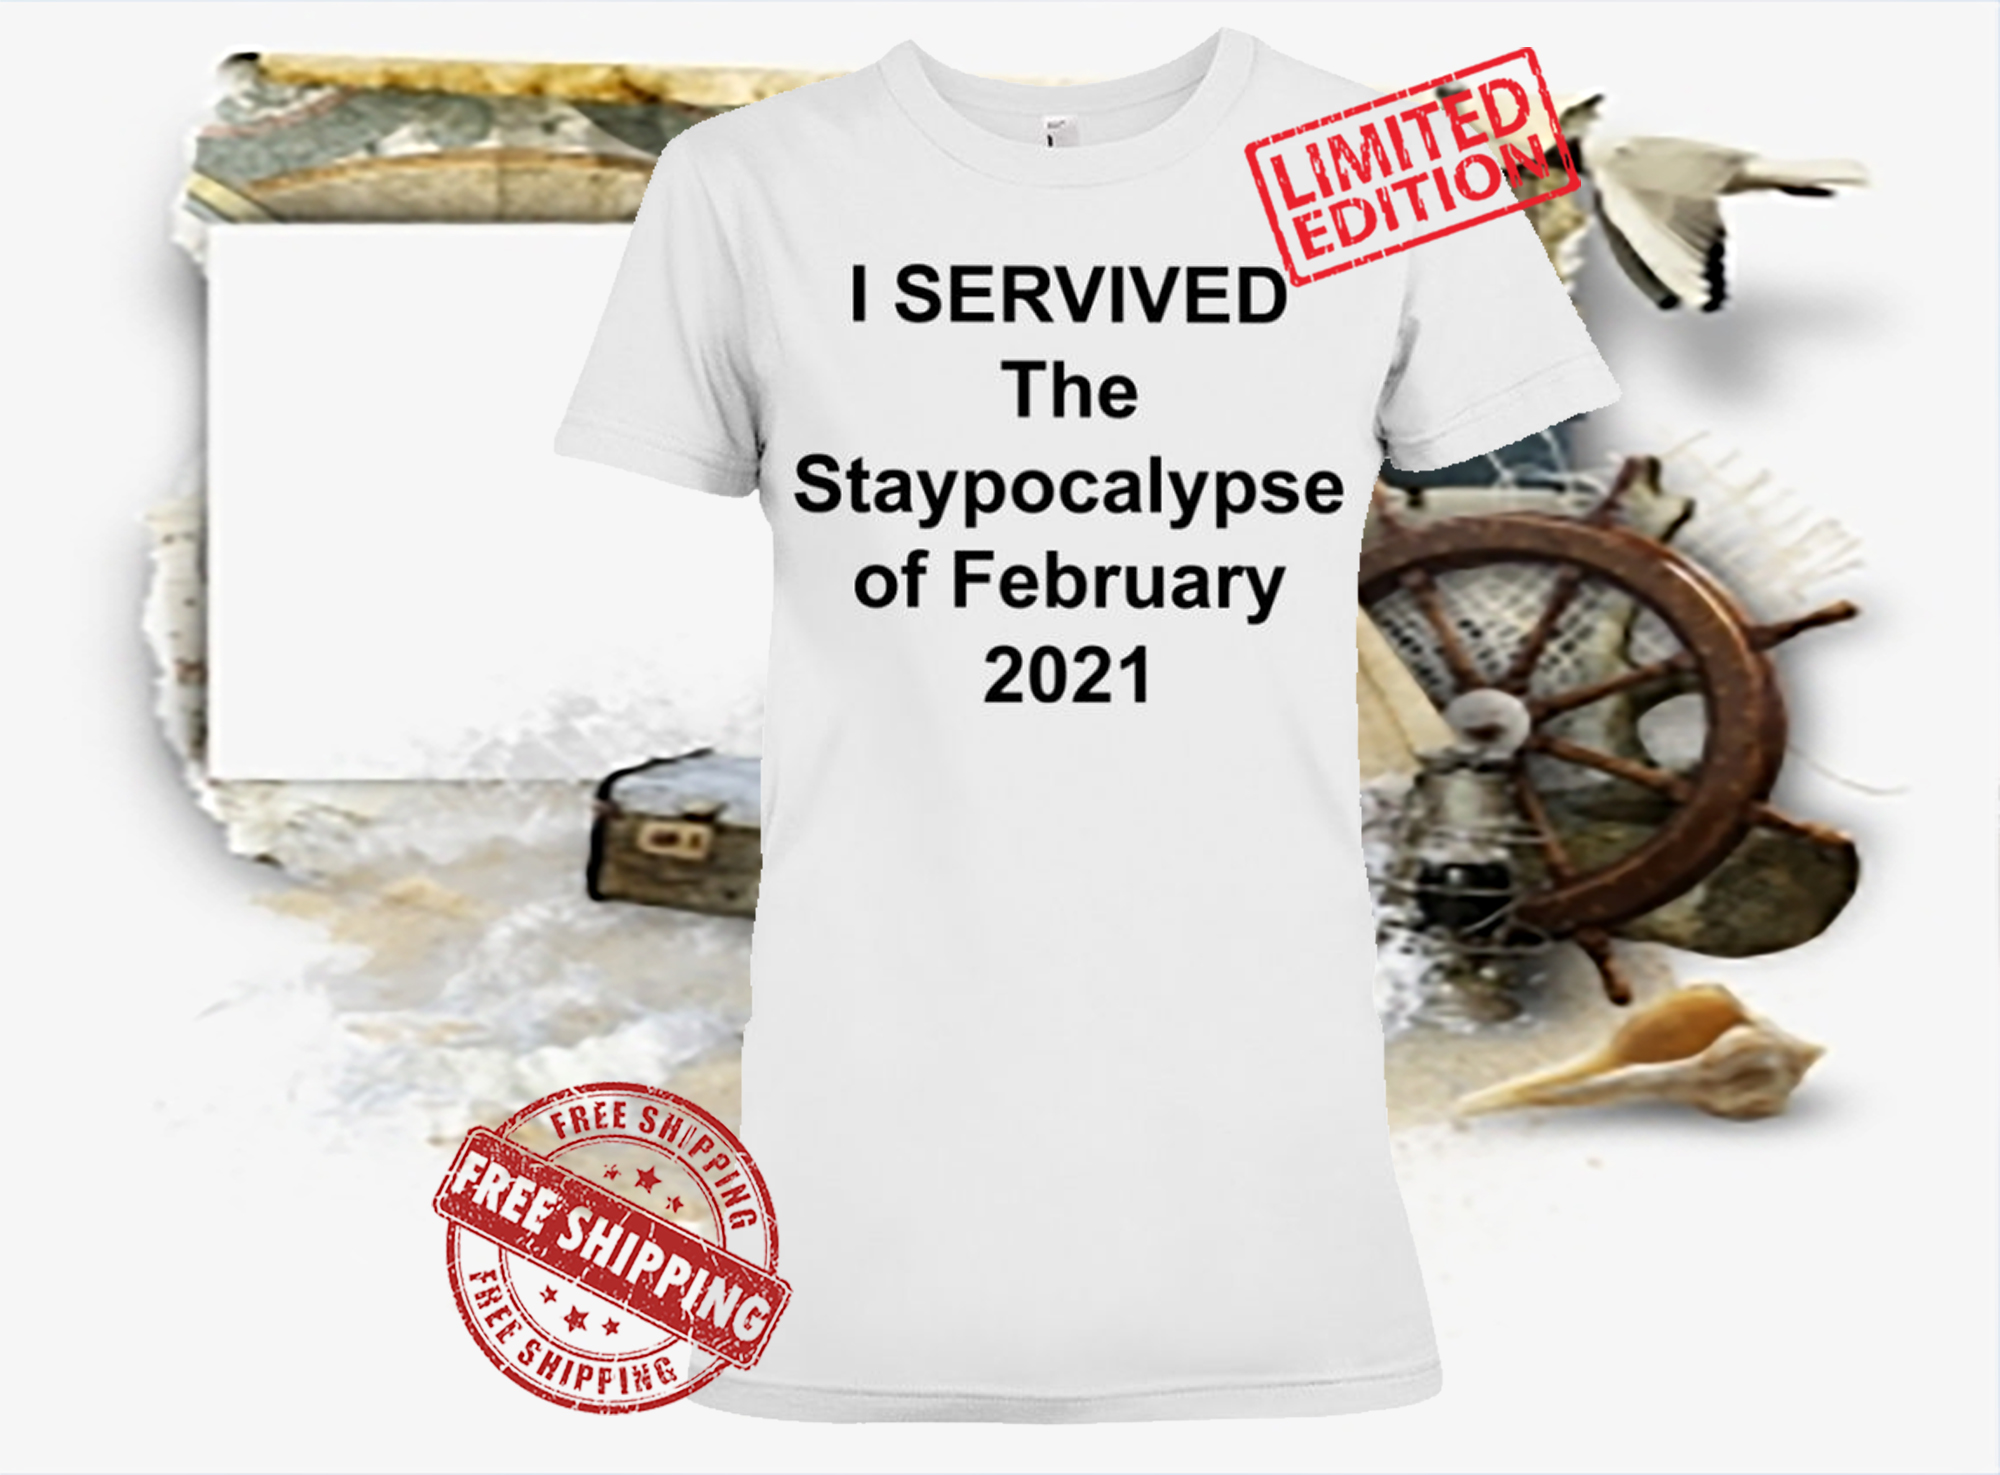 2021 I SERVIVED The Staypocalypse Of February Shirt